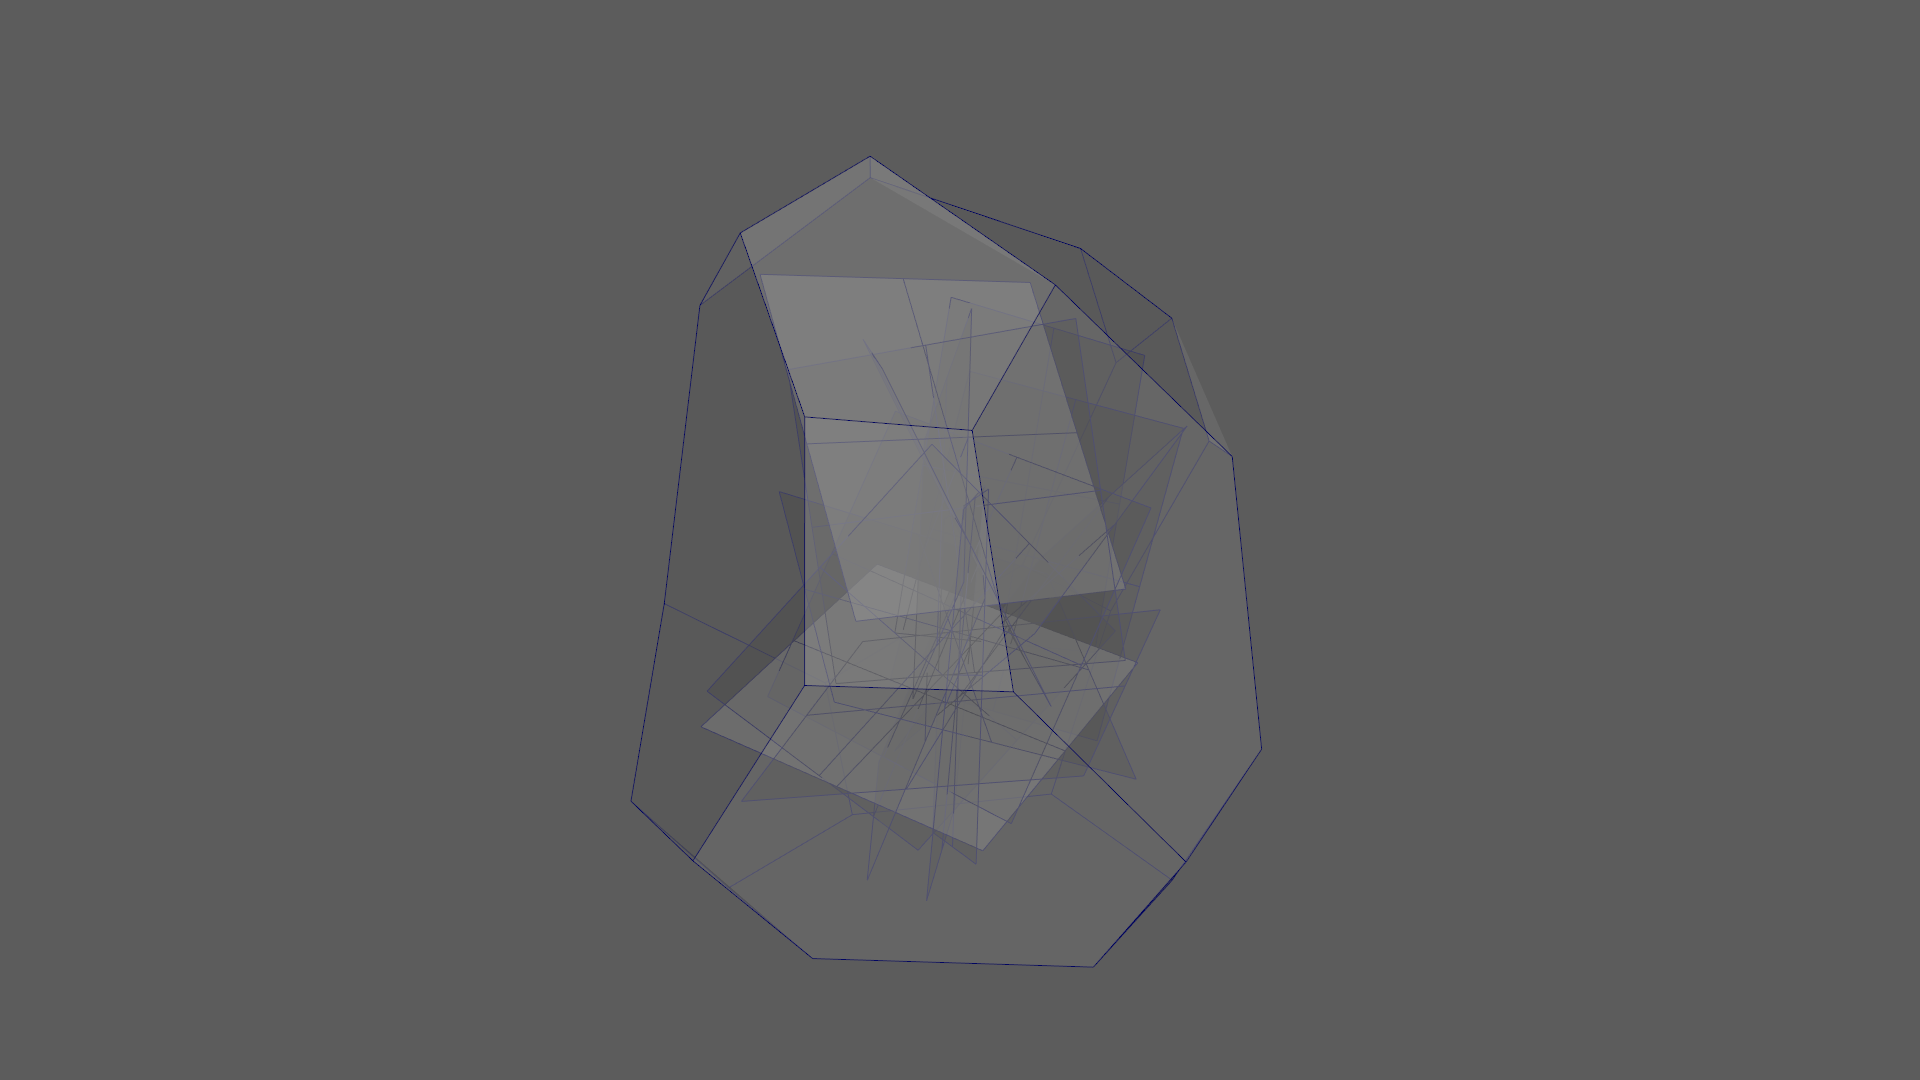 Figure 24: Wireframe of the crystal's internal geometry with crumpled up quads.